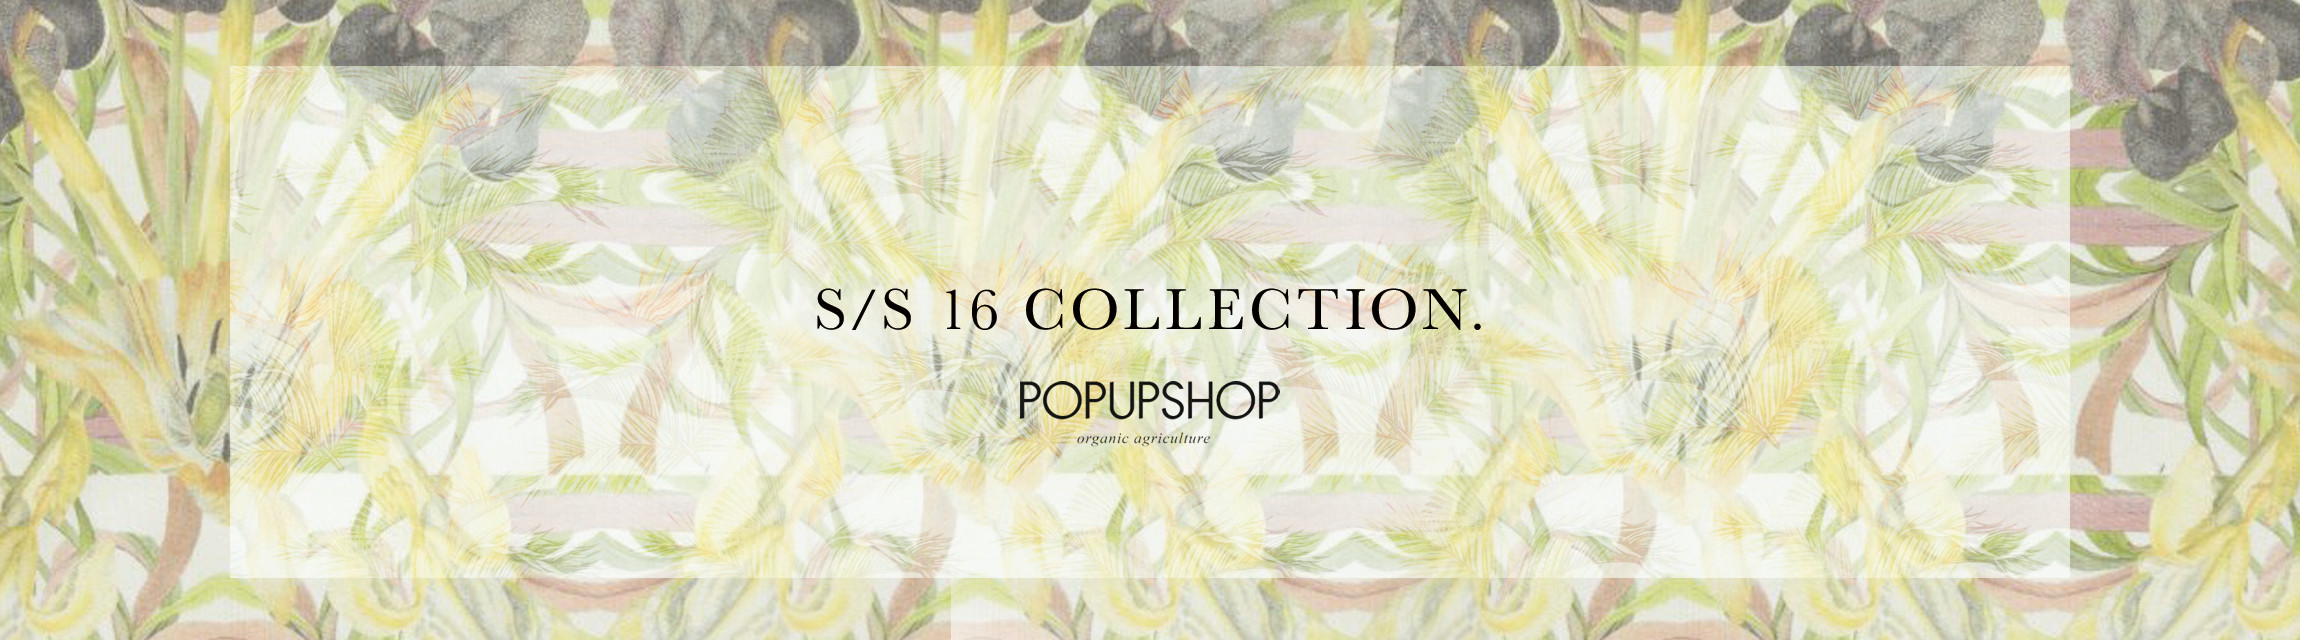 16ss popup